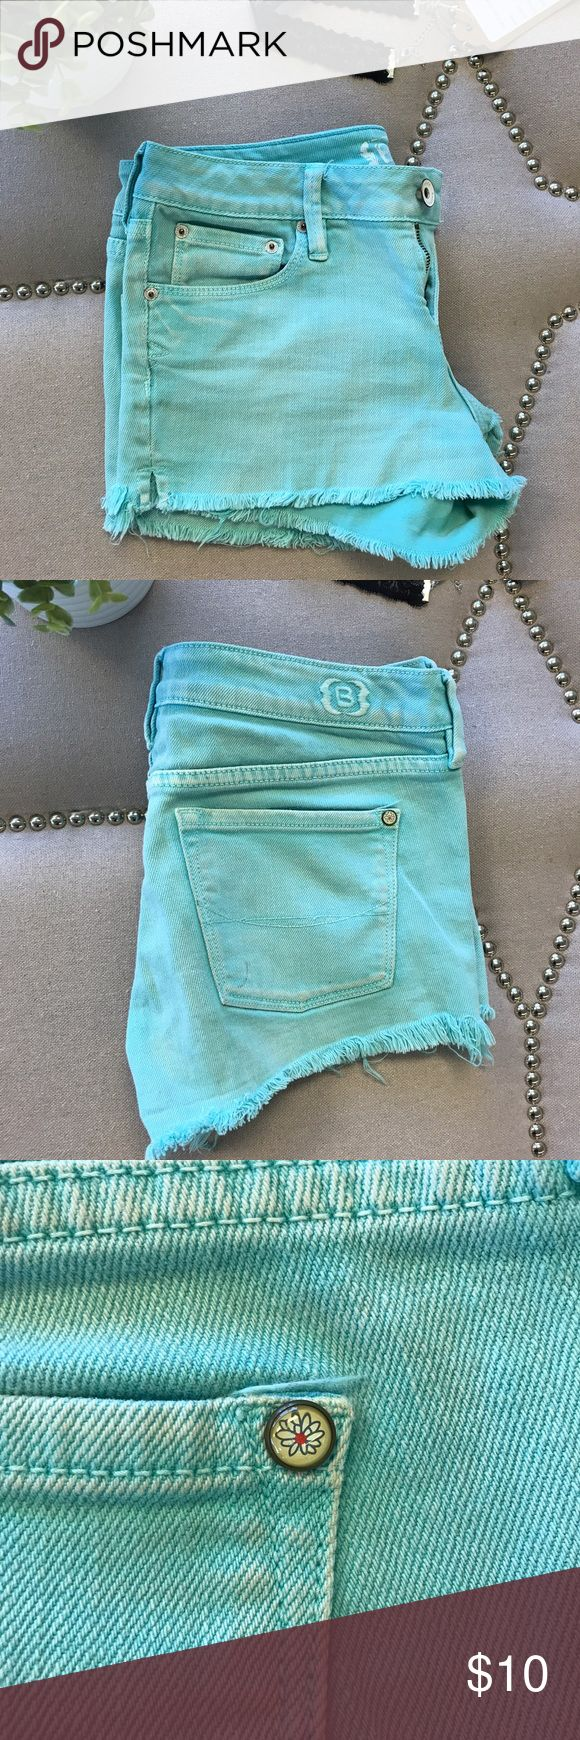 Teal shorts Teal shorts. Used condition, but still have a ton of life left. Small stain on back pocket, as shown in second picture. Measurements upon request. B Shorts